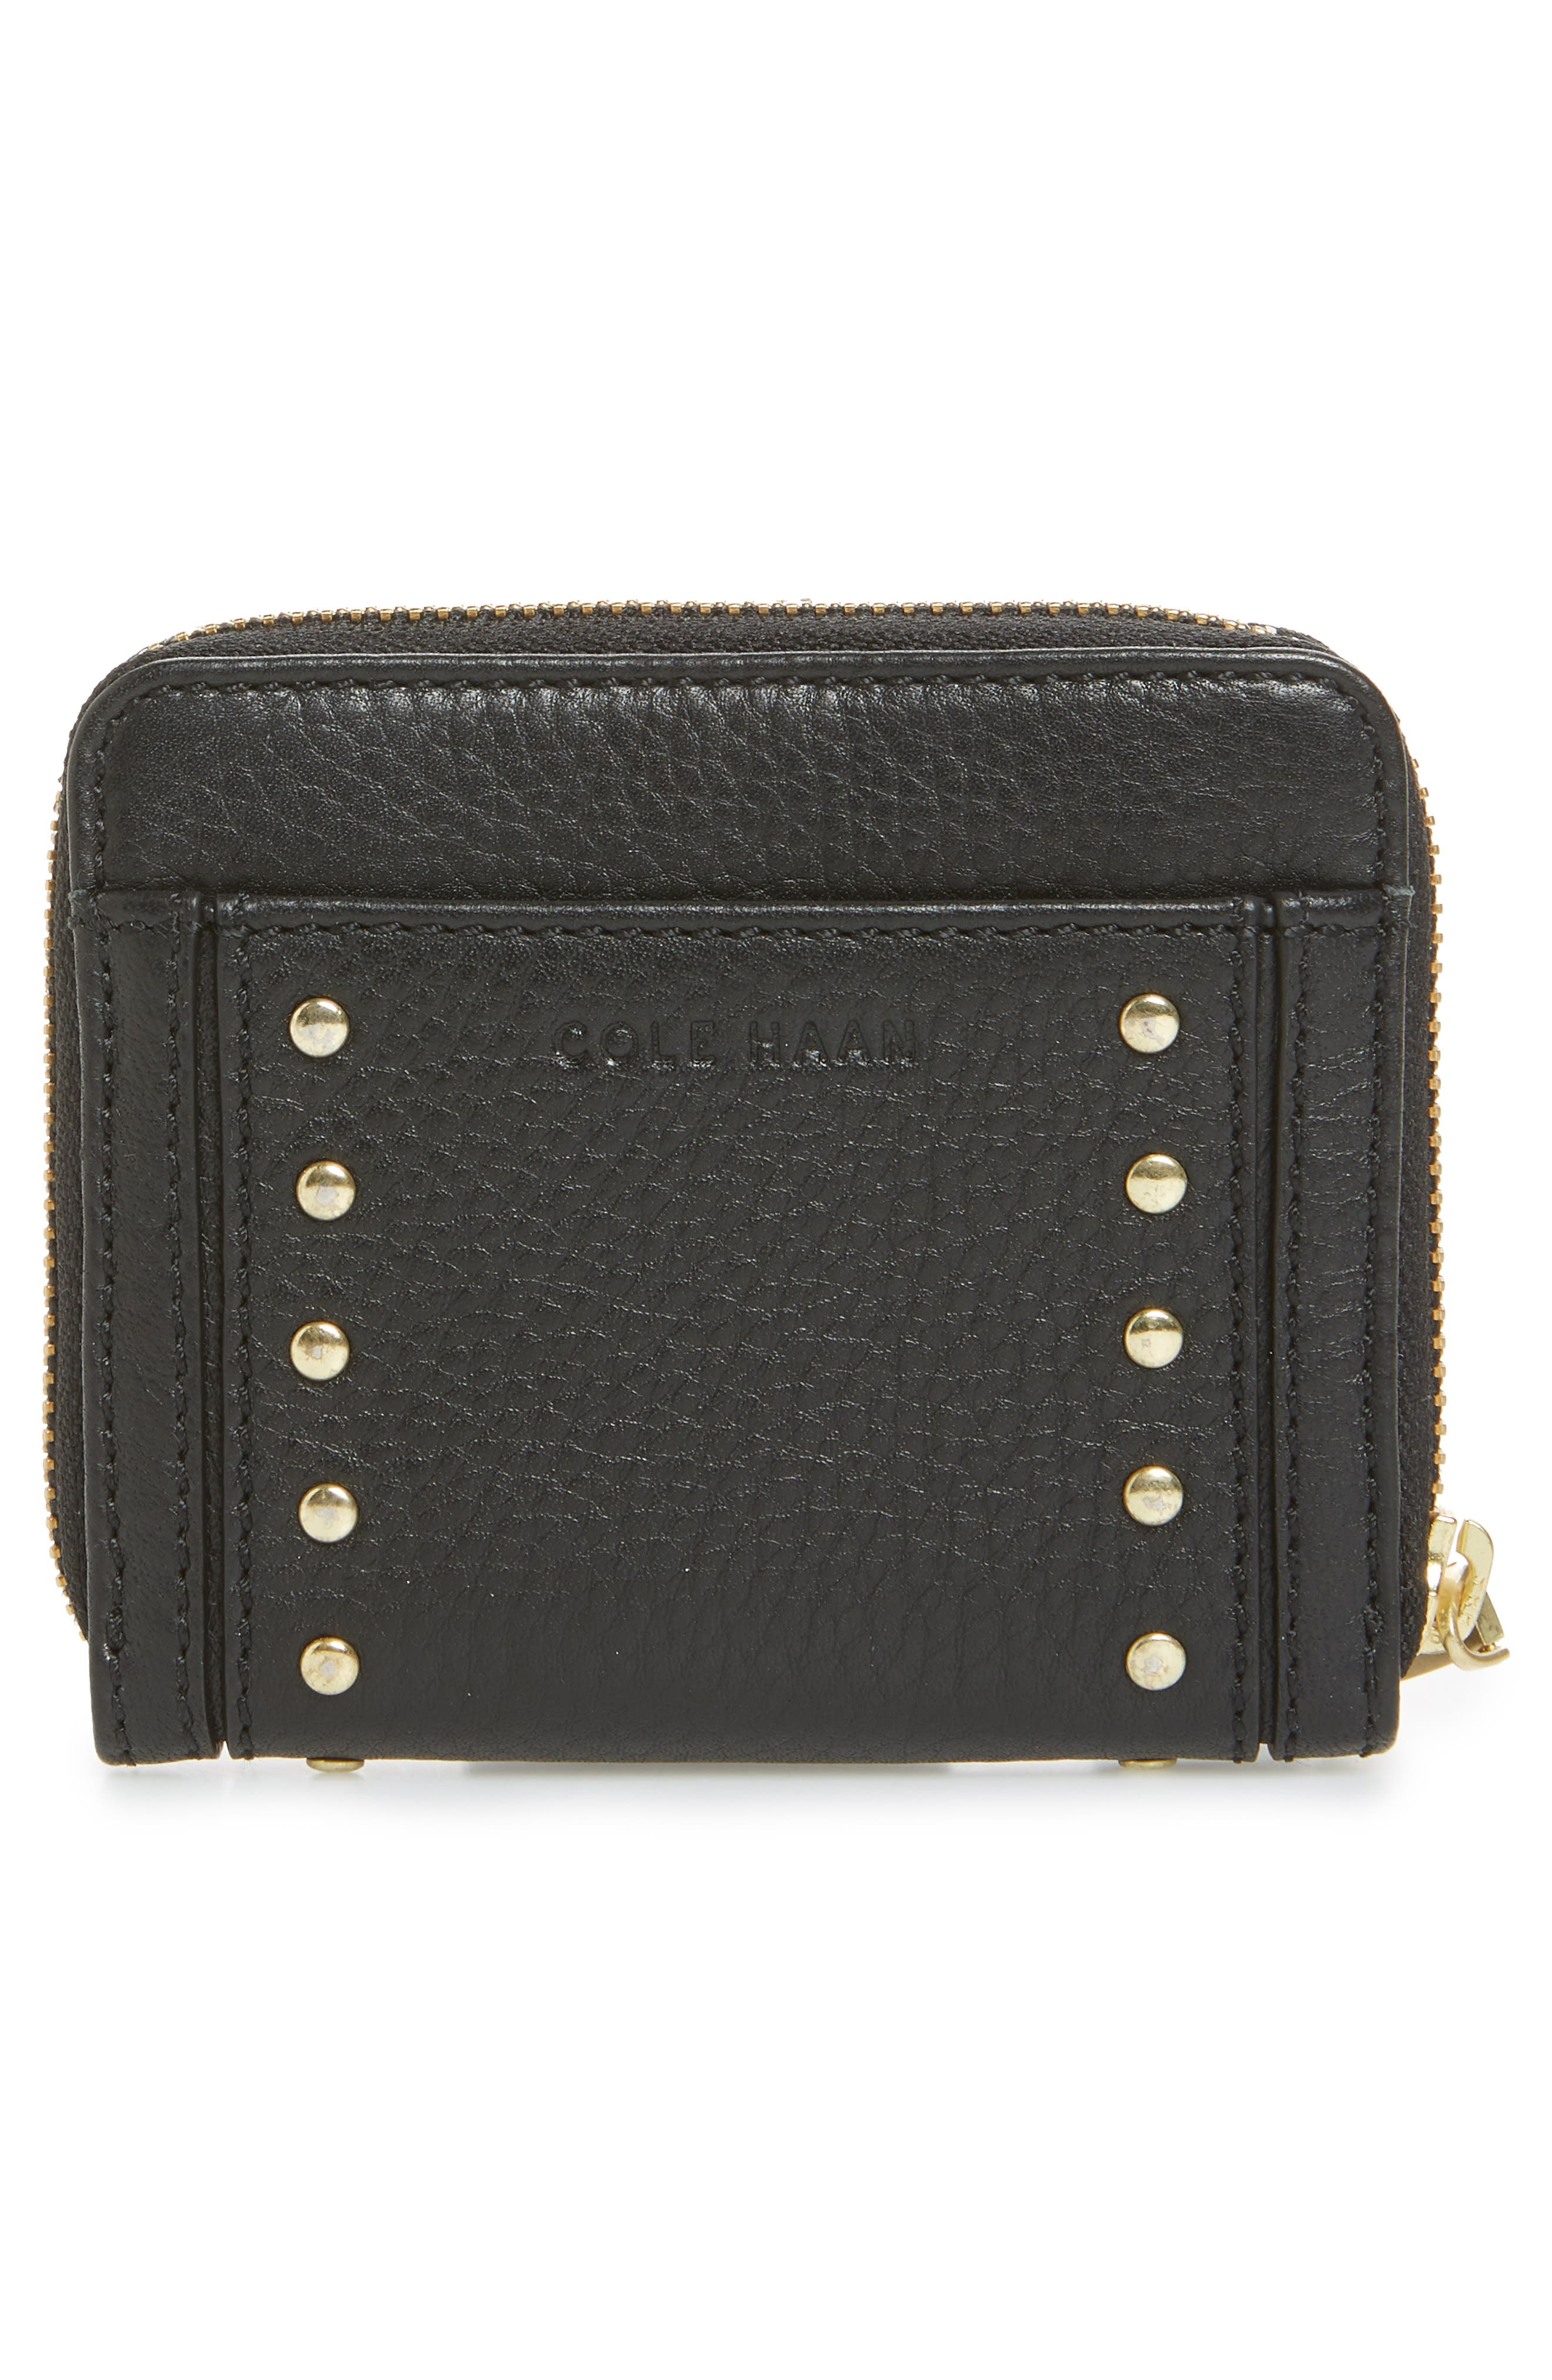 Cassidy Small RFID Leather Zip Wallet,                             Alternate thumbnail 4, color,                             001